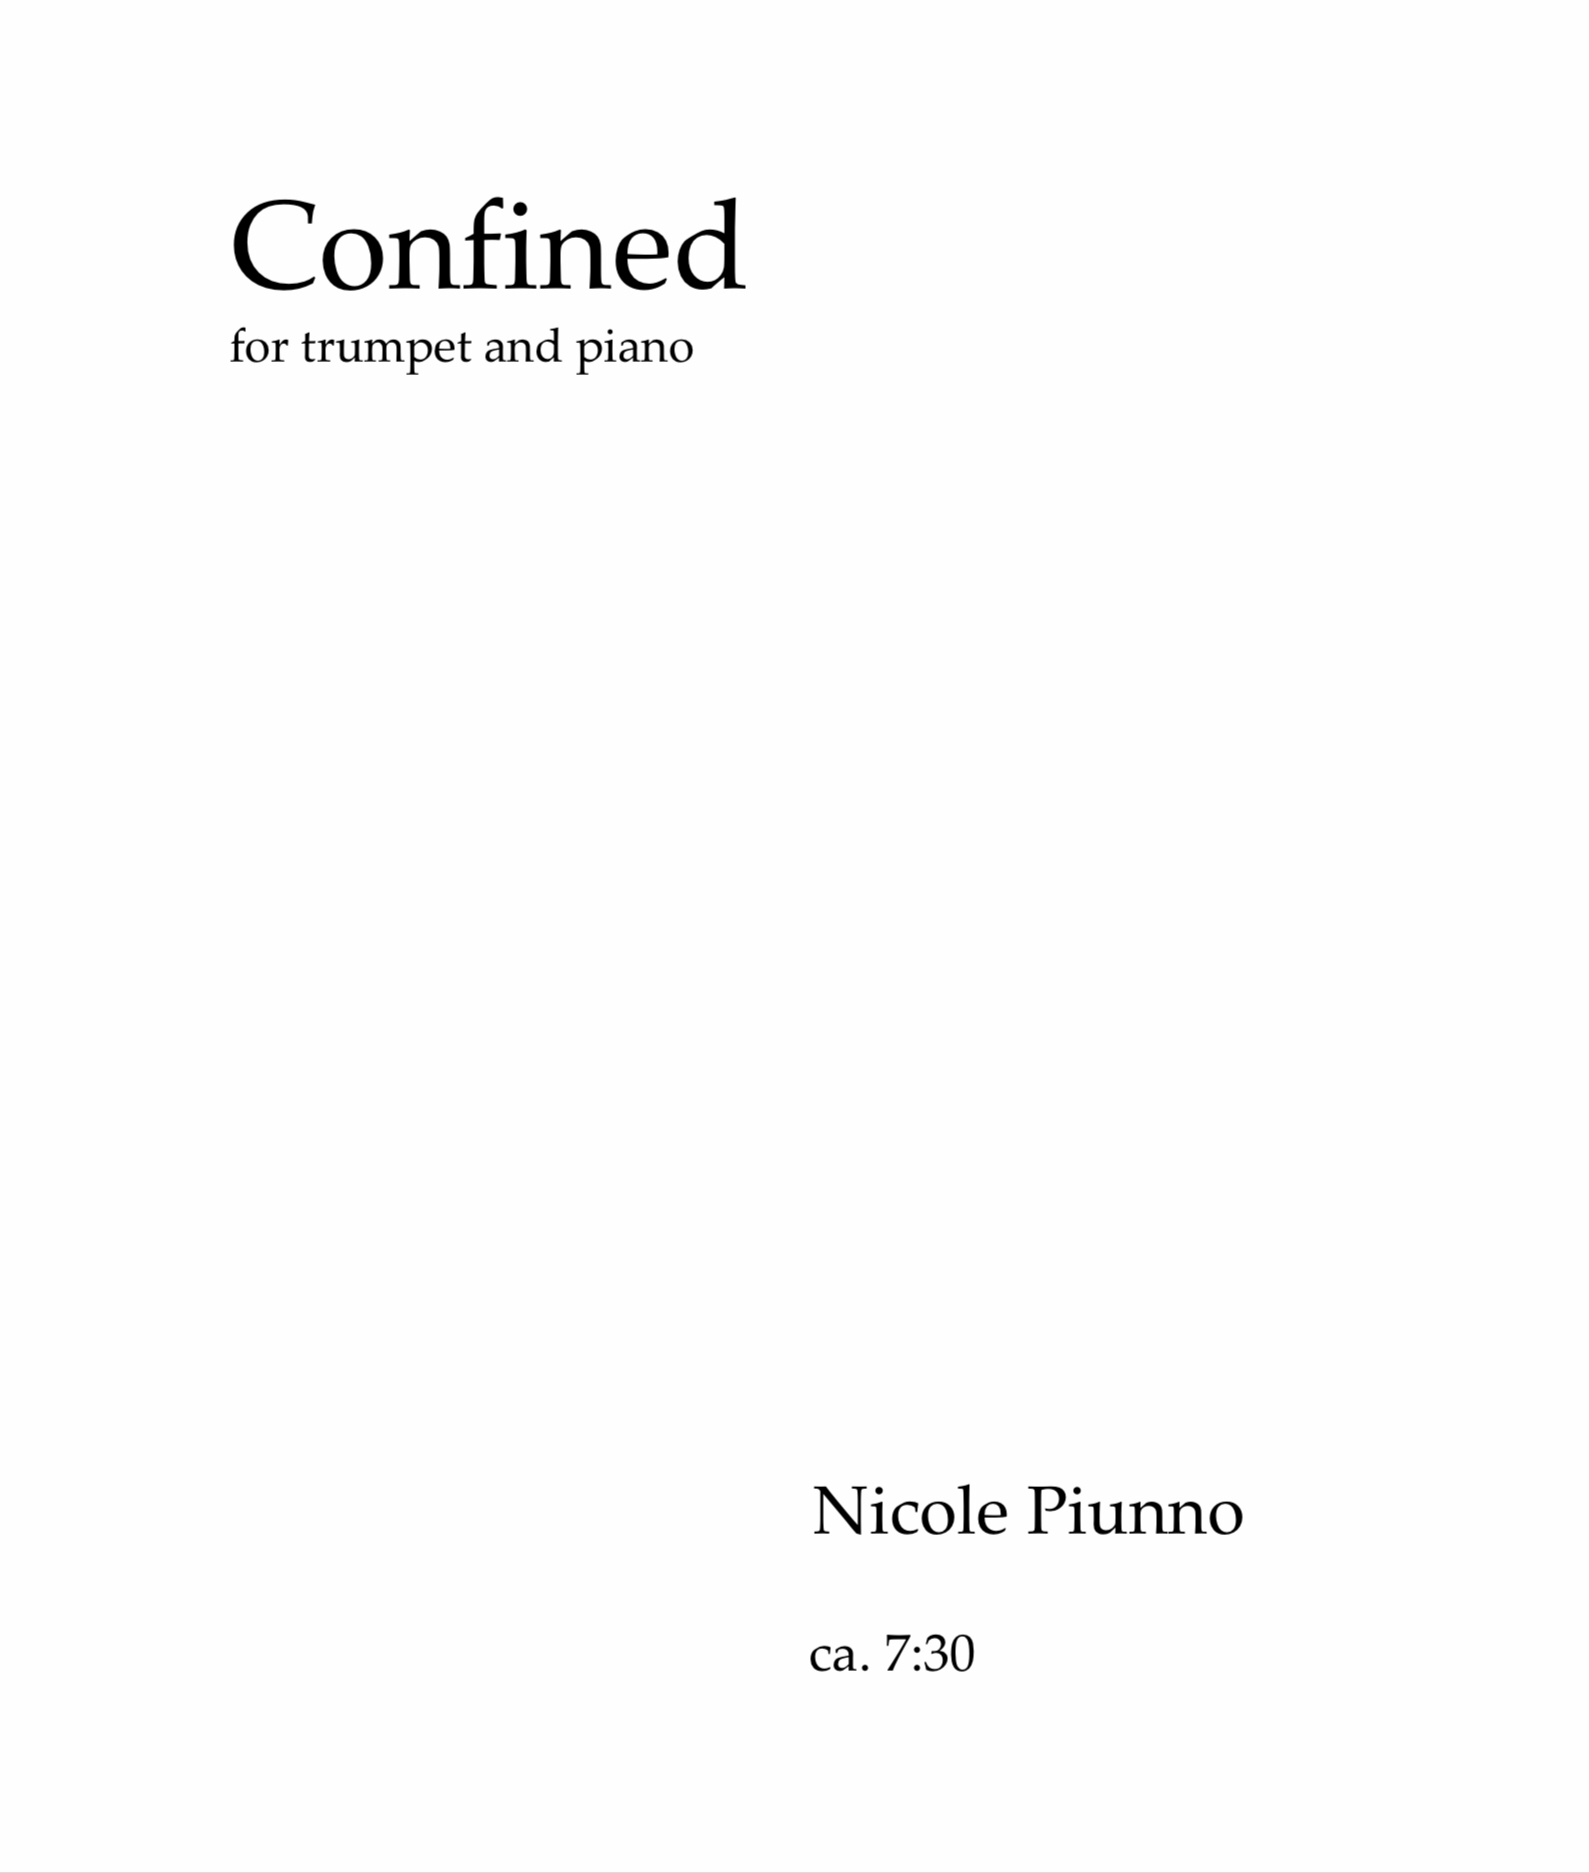 Confined by Nicole Piunno